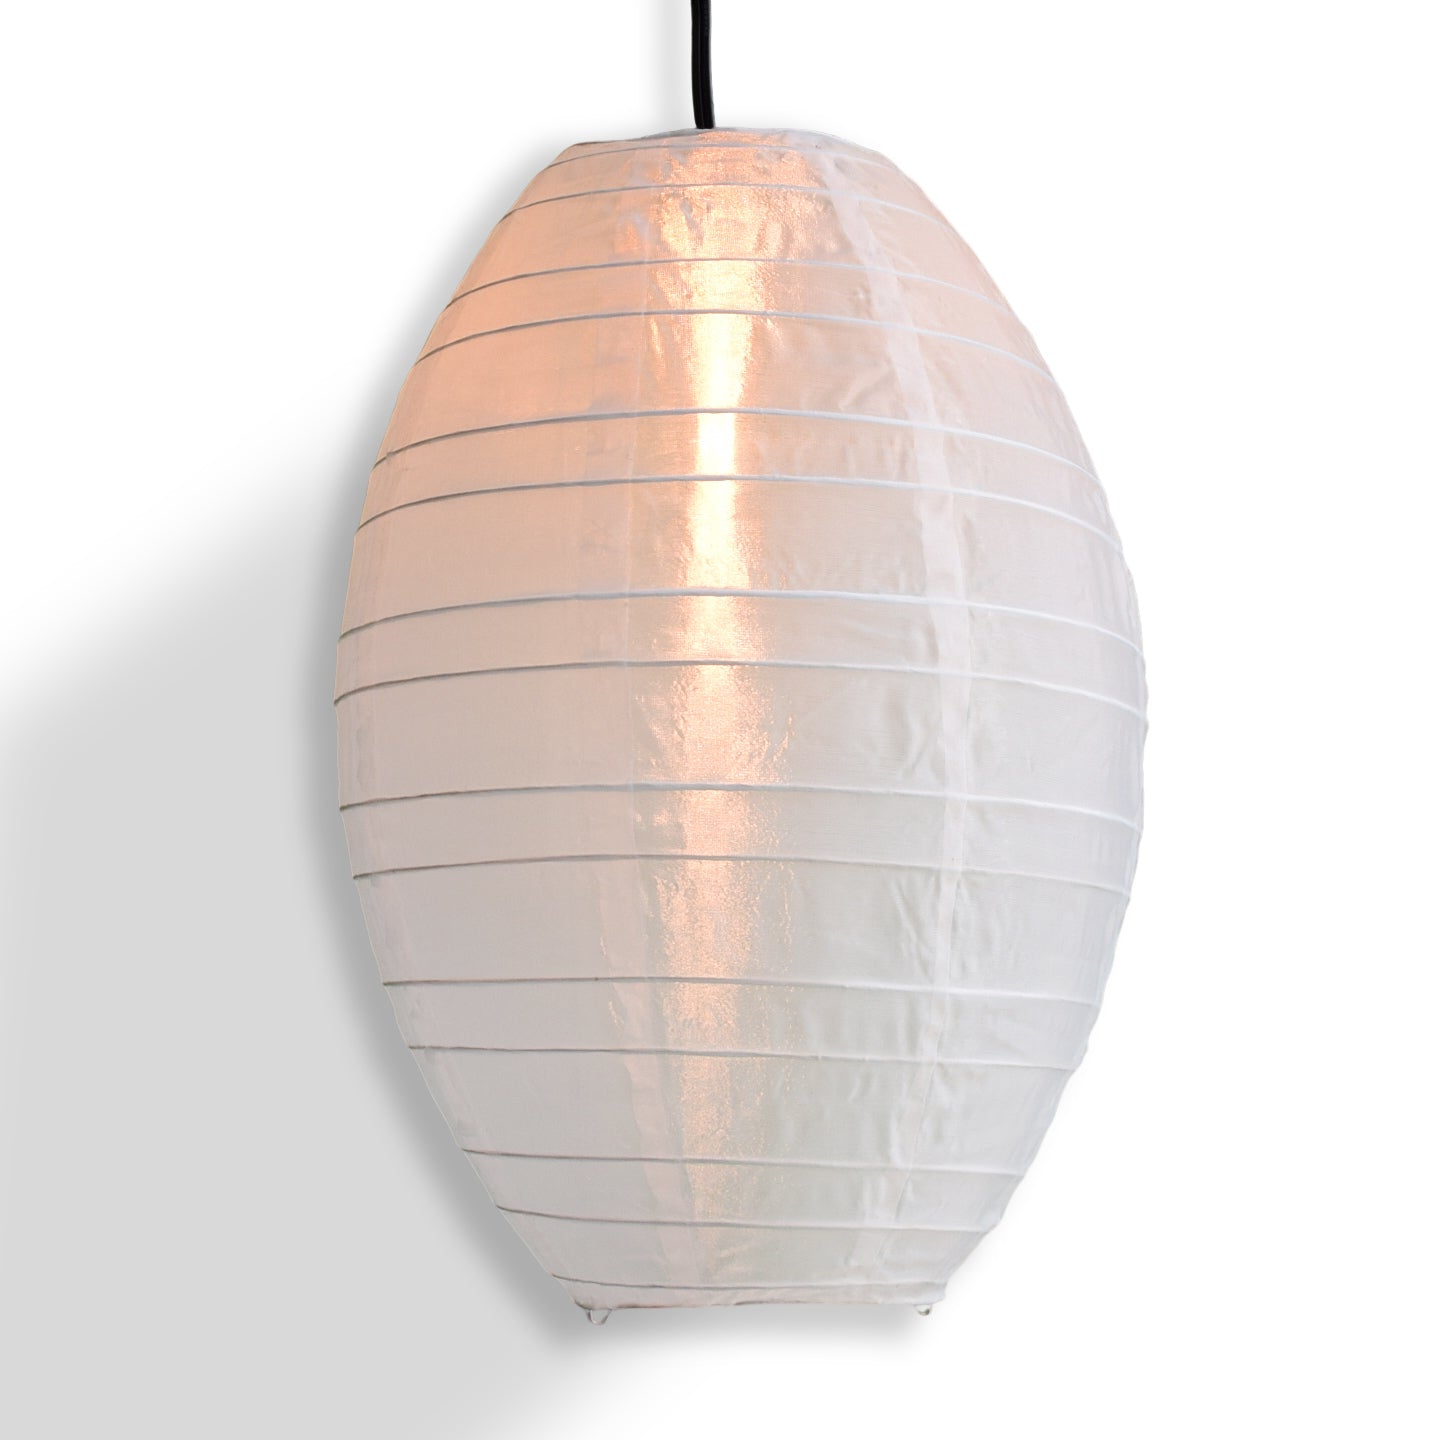 White Kawaii Unique Oval Egg Shaped Nylon Lantern, 10-inch x 14-inch - PaperLanternStore.com - Paper Lanterns, Decor, Party Lights & More